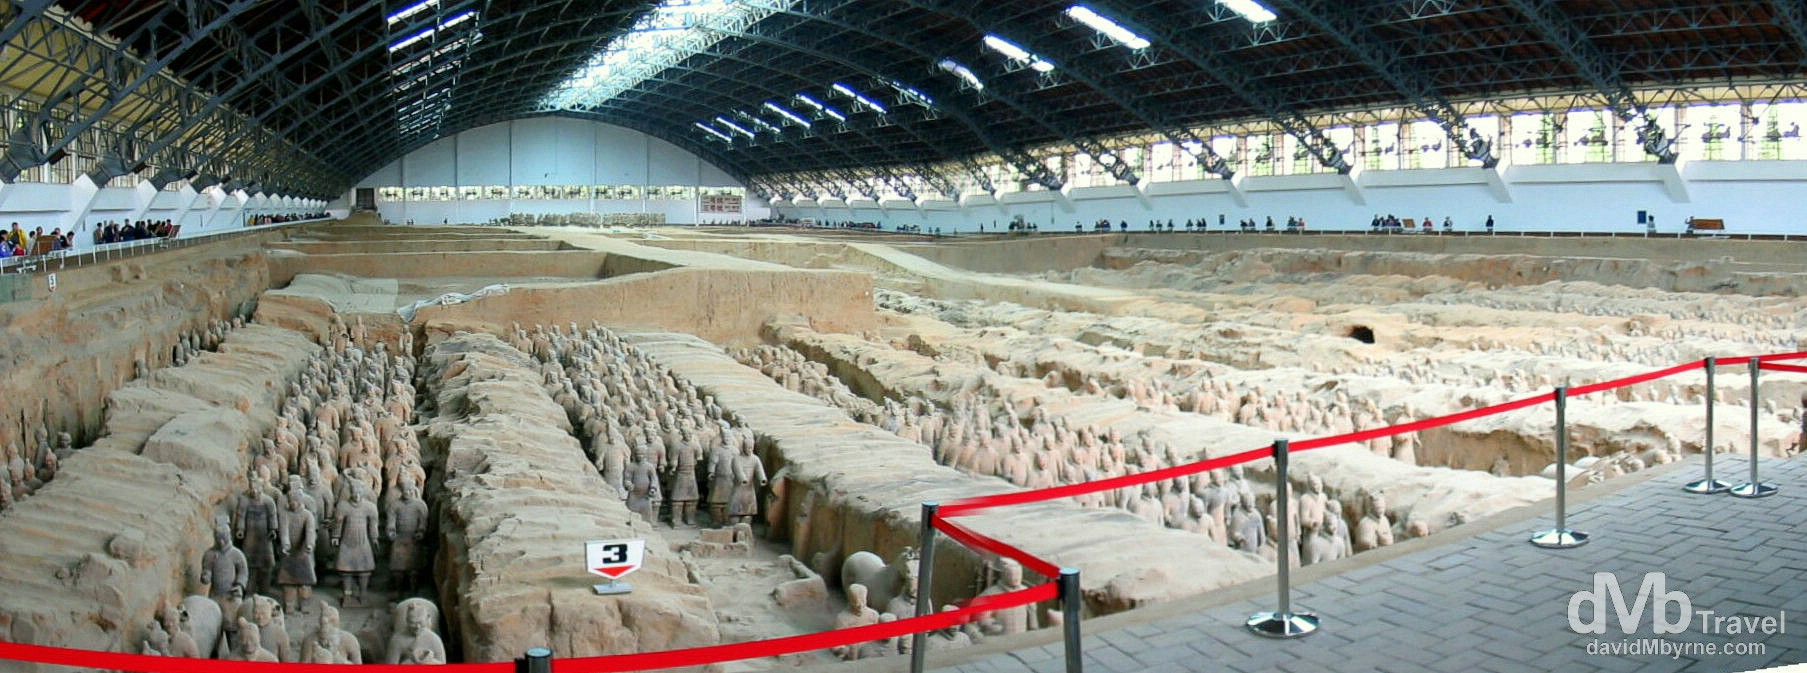 Vault 1 of the Terracotta Army on the outskirts of Xian, Shaanxi Province, China. September 30th, 2004